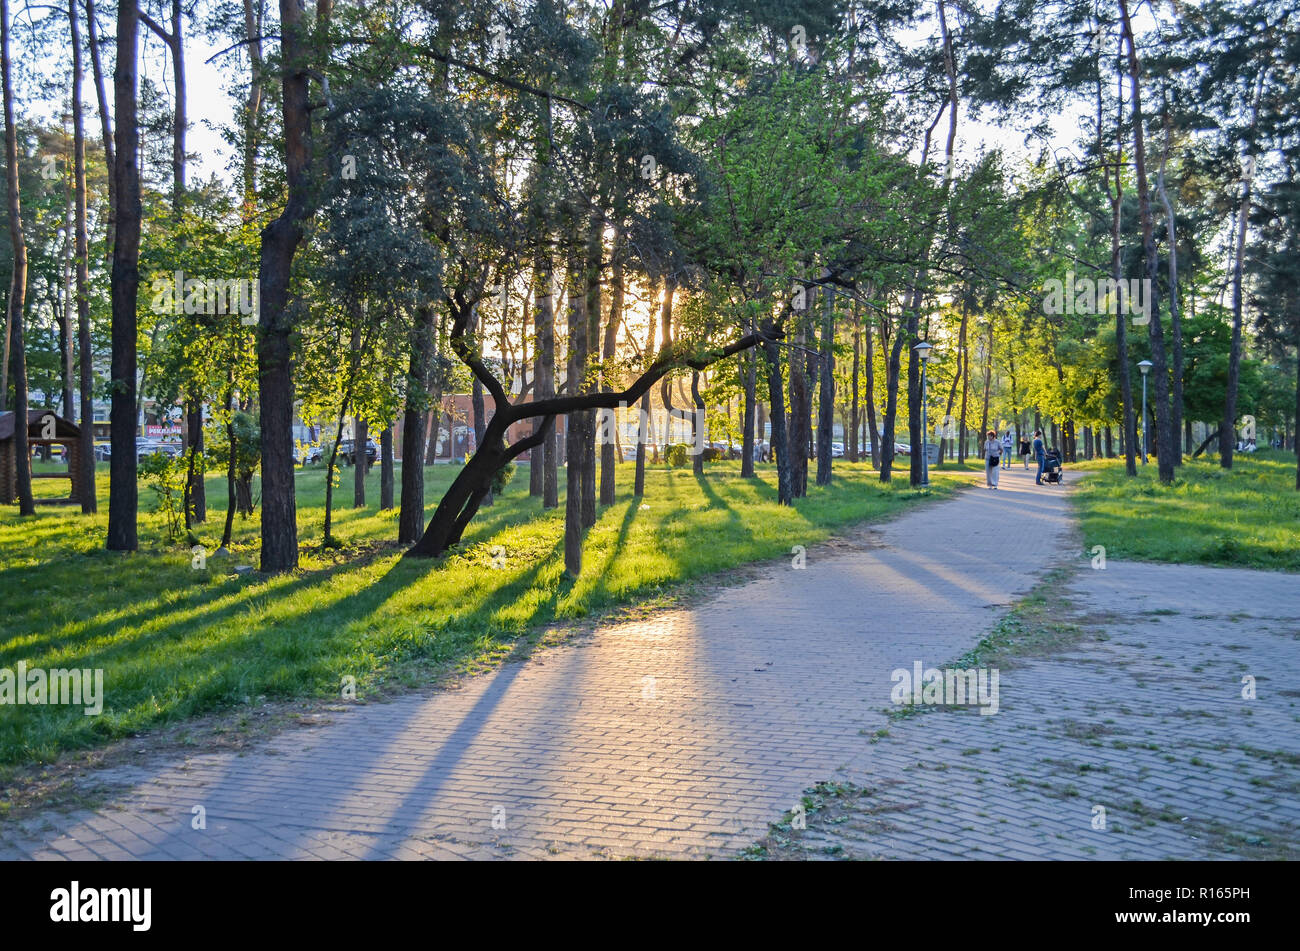 The sunset sun shines beautifully through the tree in the park - Stock Image